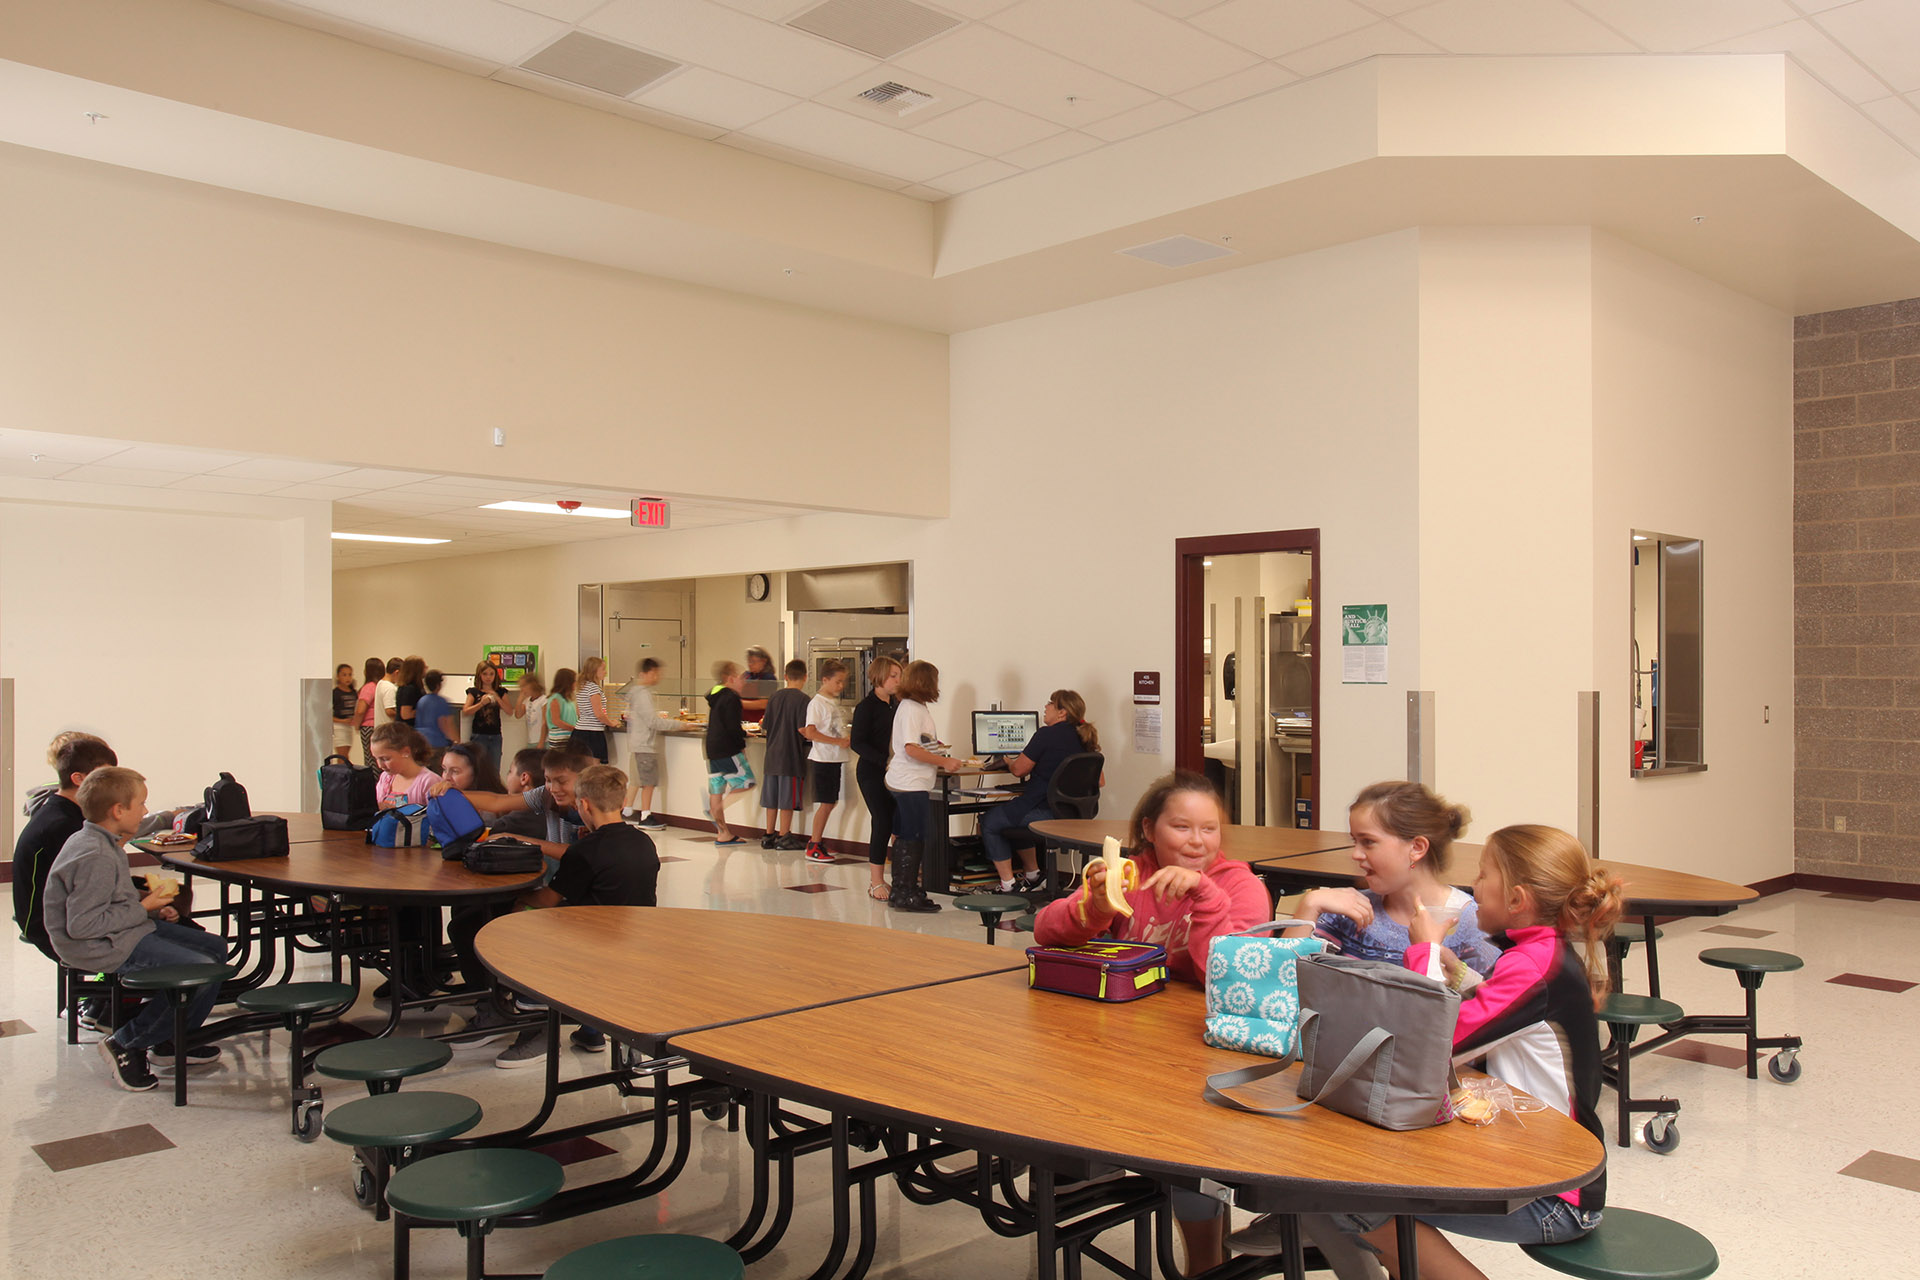 Greensferry Elementary Cafeteria